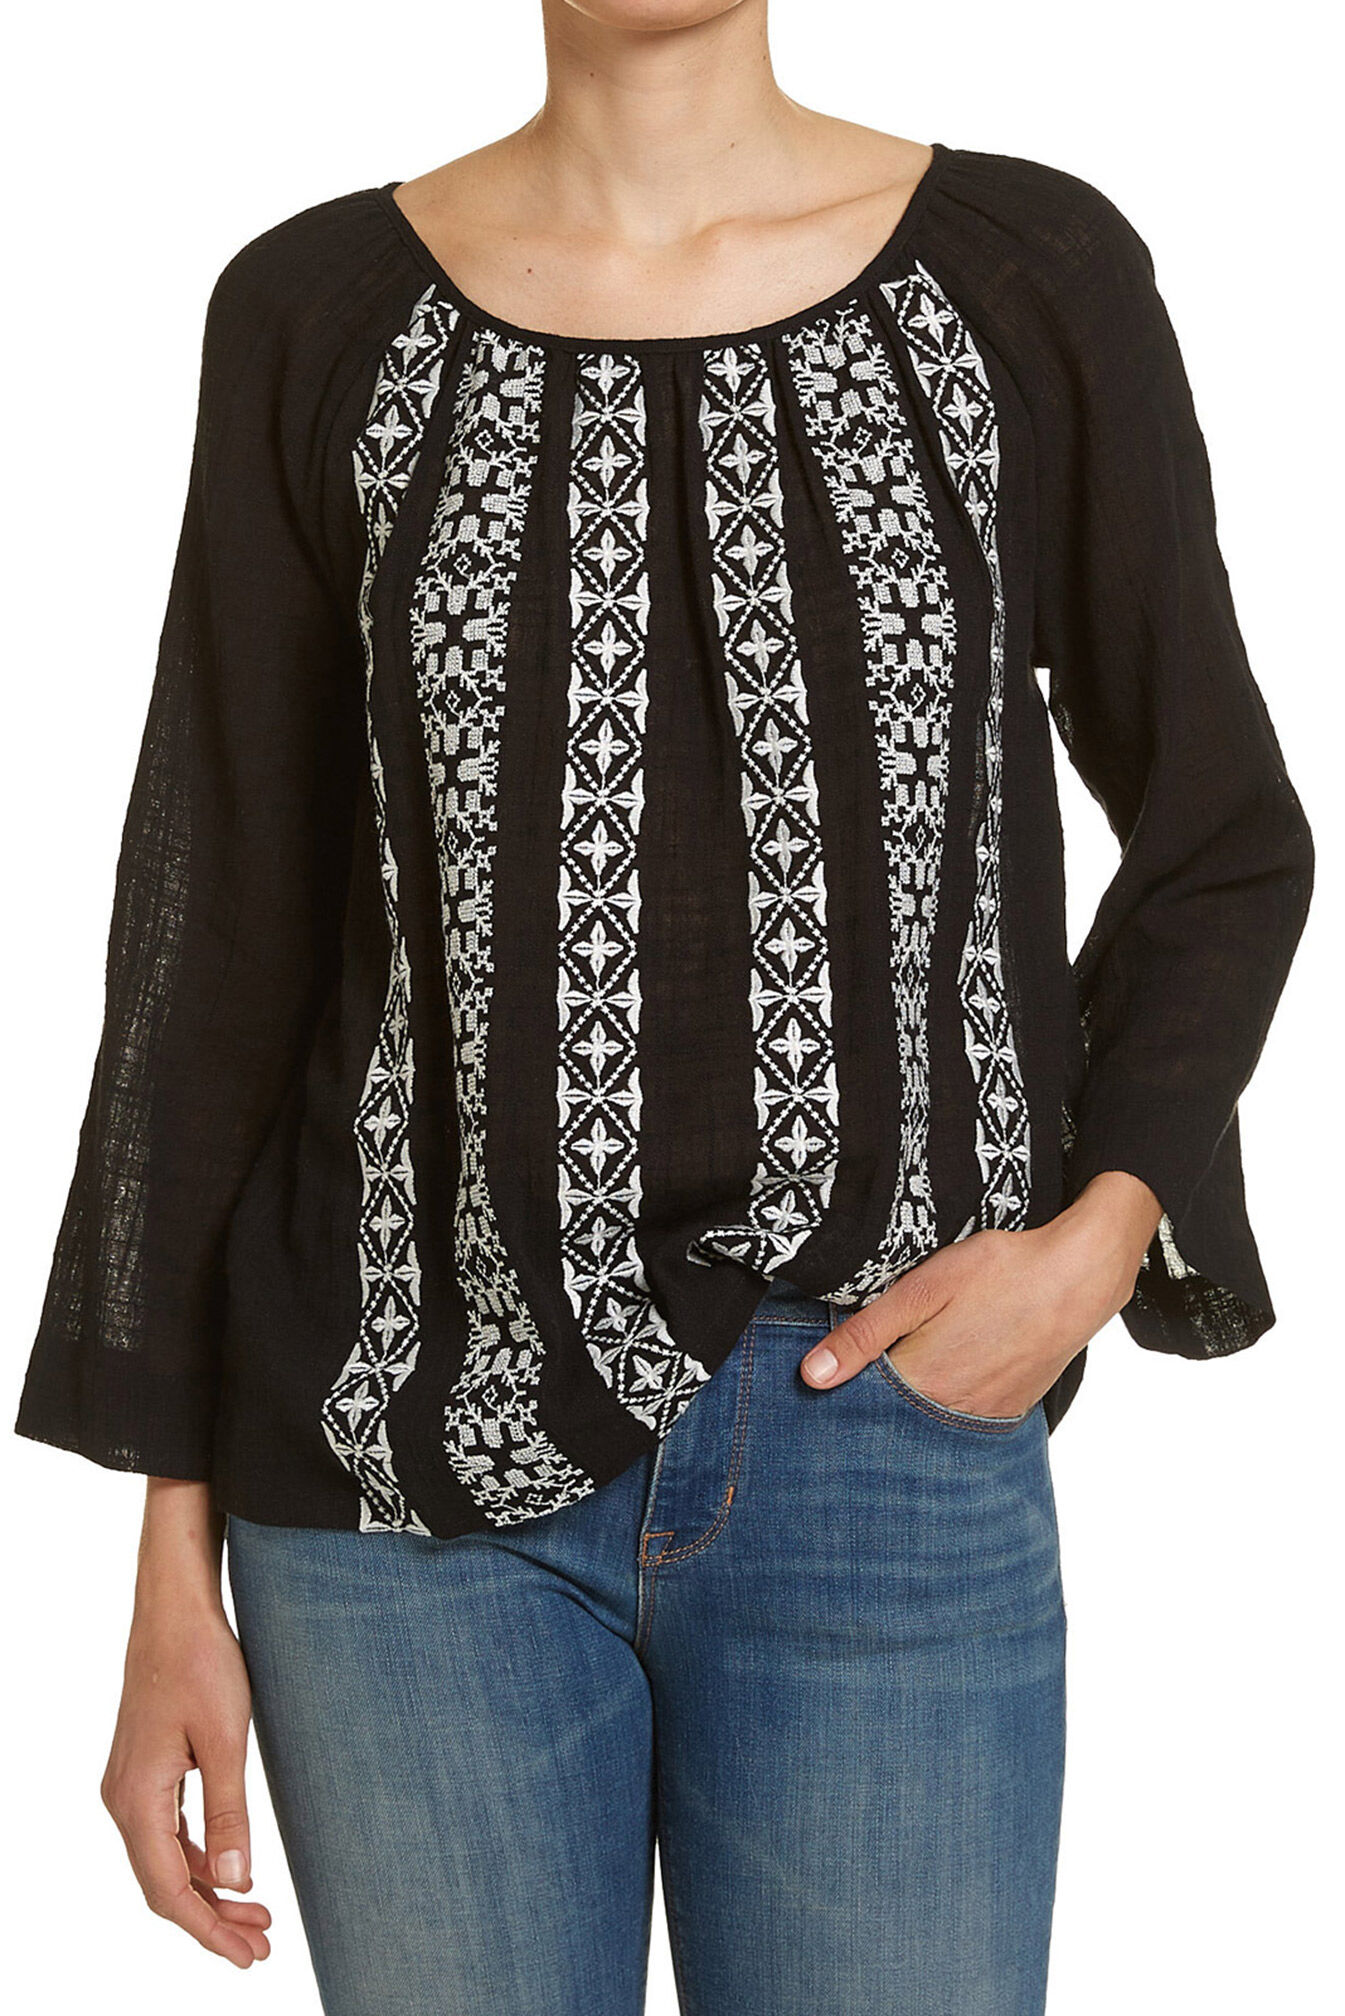 Womens Casual Summer Short Sleeve Gypsy Tops Tunic T-shirt Blouse Tee Plus Size. Brand New · Unbranded. $ Buy It Now. Free Shipping. Karen Kane Womens Desert Gypsy Ivory Gauze Peasant Top Blouse Plus 2X BHFO See more like this. M Ethnic Cotton Boho Gypsy Hippie Peasant YOGA Festival Top Blouse Tunic Dress.